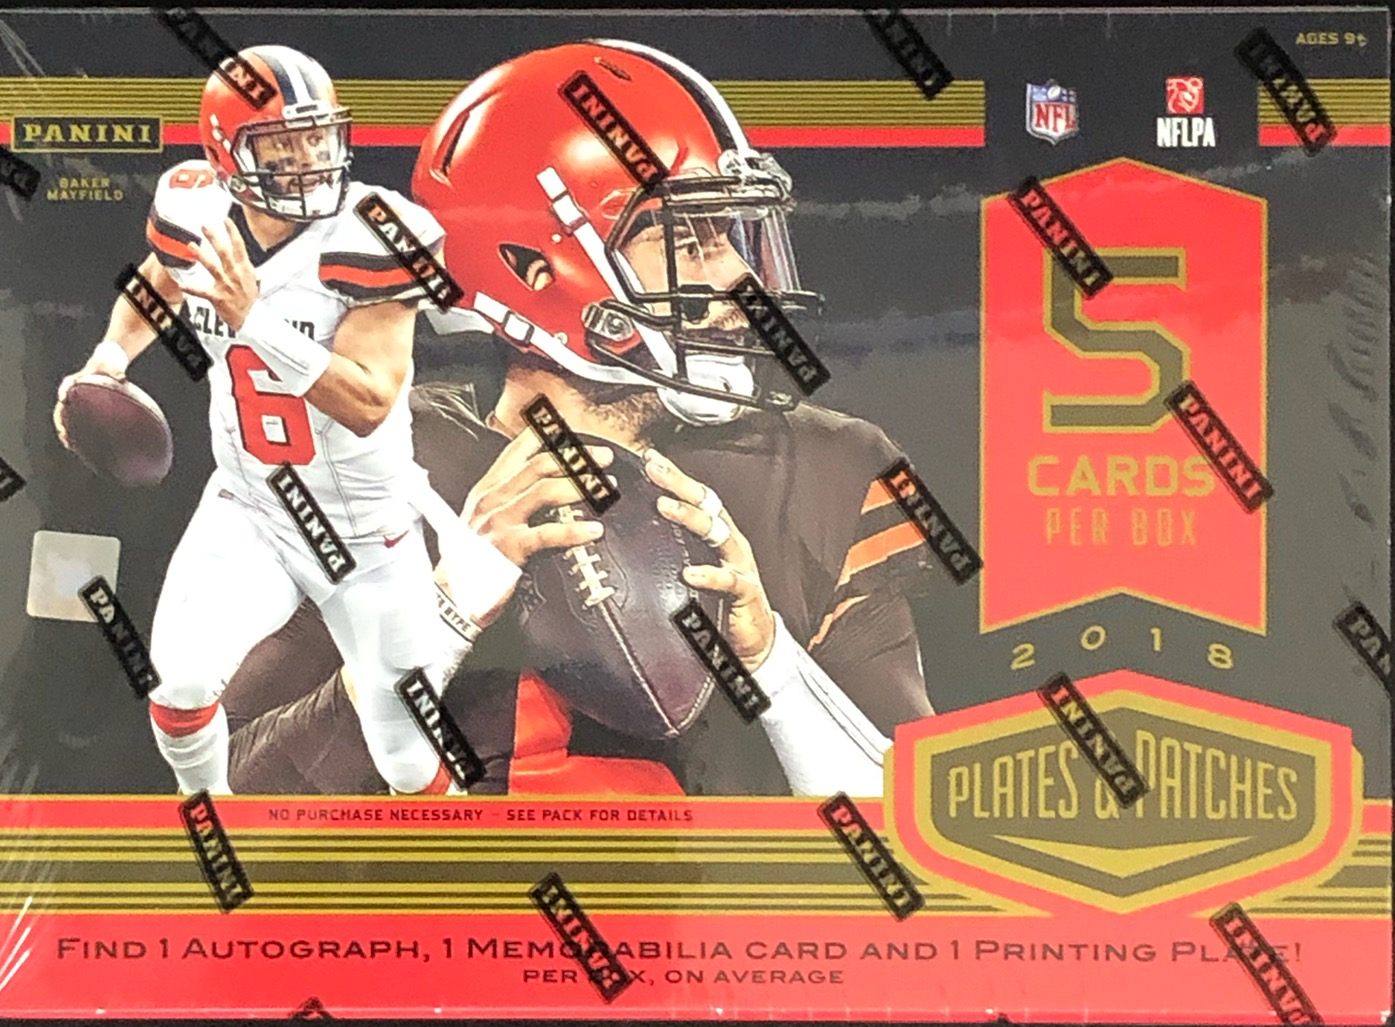 2018 Panini Plates & Patches NFL Football Hobby Box